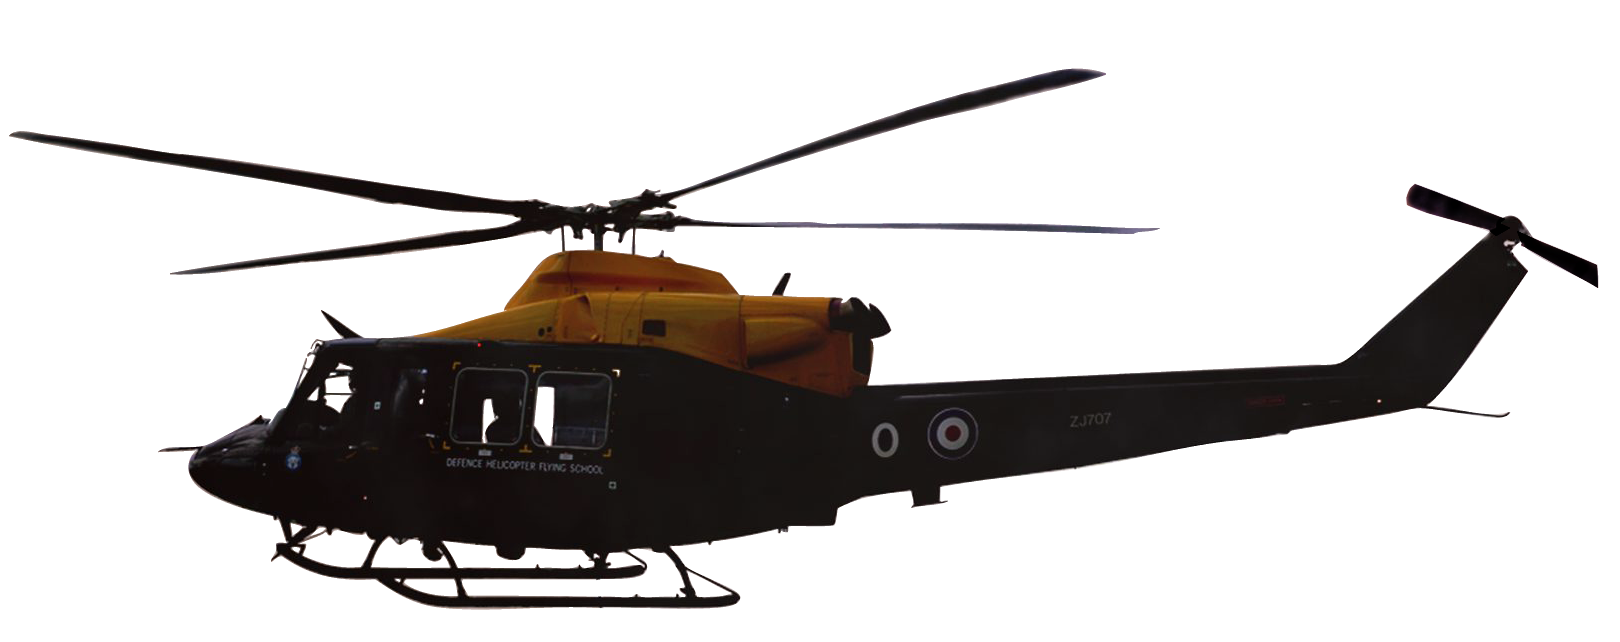 Helicopter clipart flying machine. Transparent png pictures free